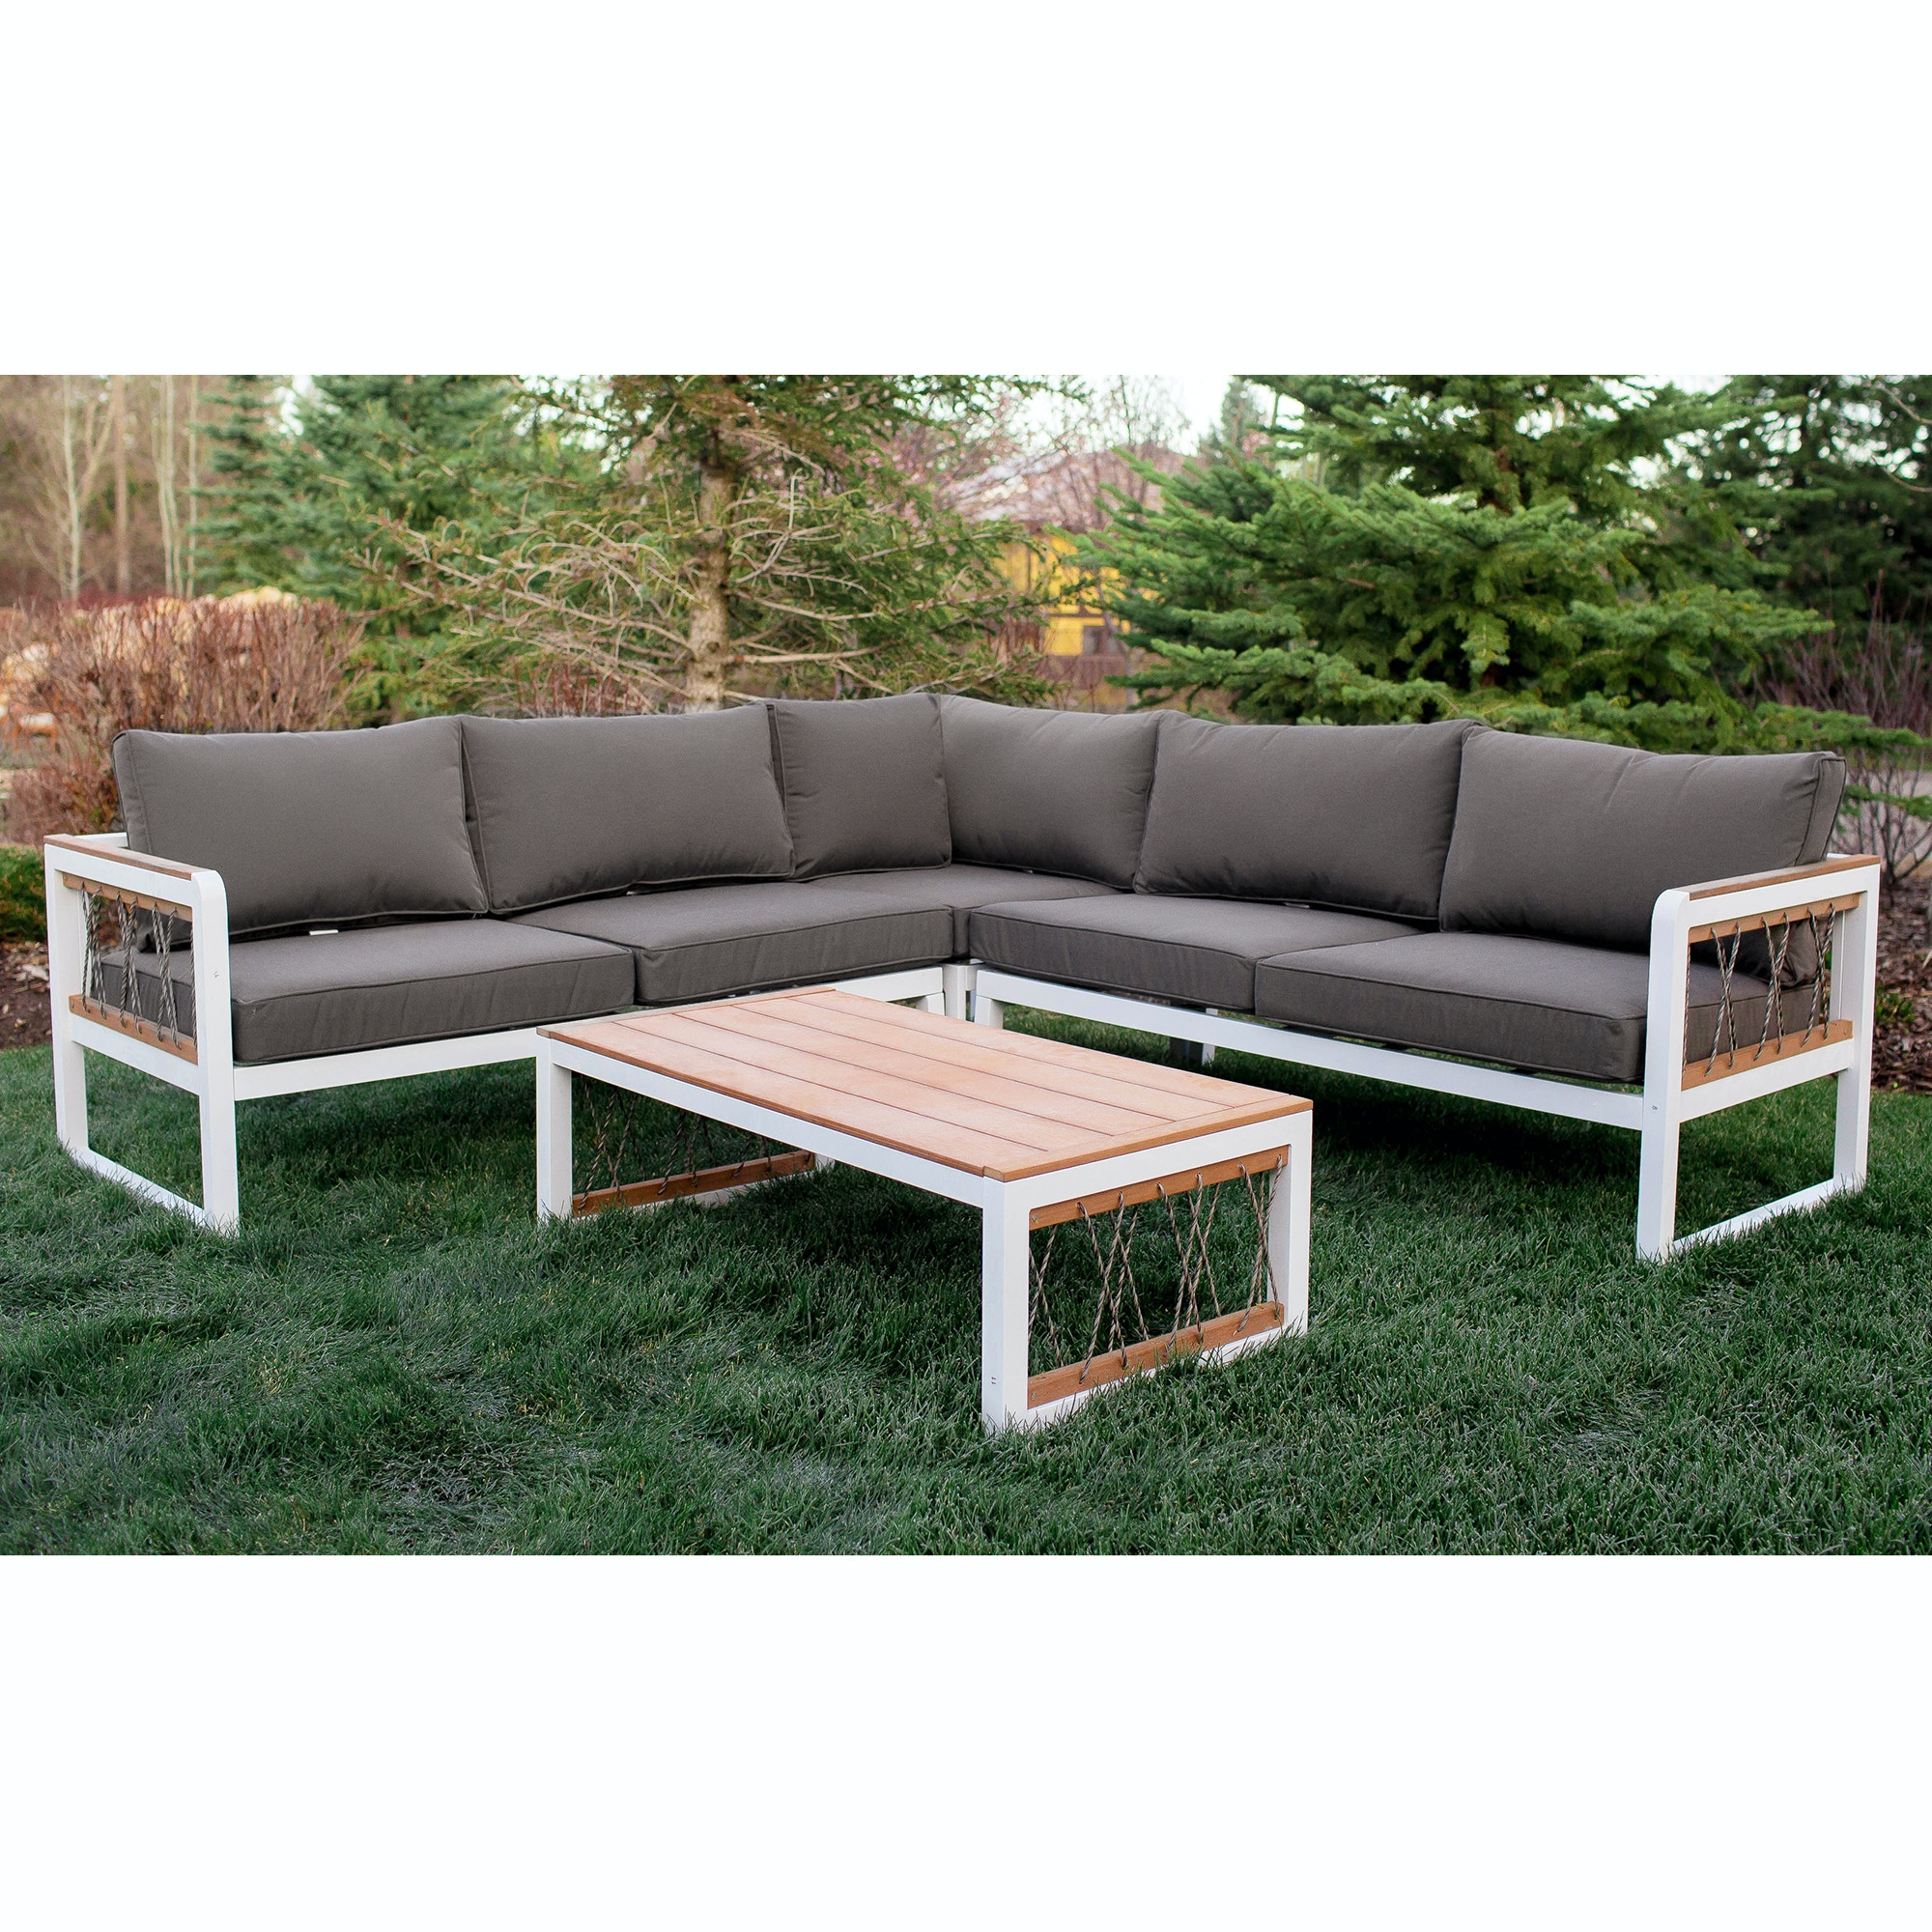 4 Piece Outdoor Sectional With Cord Accents Wedoaw4scrpwg